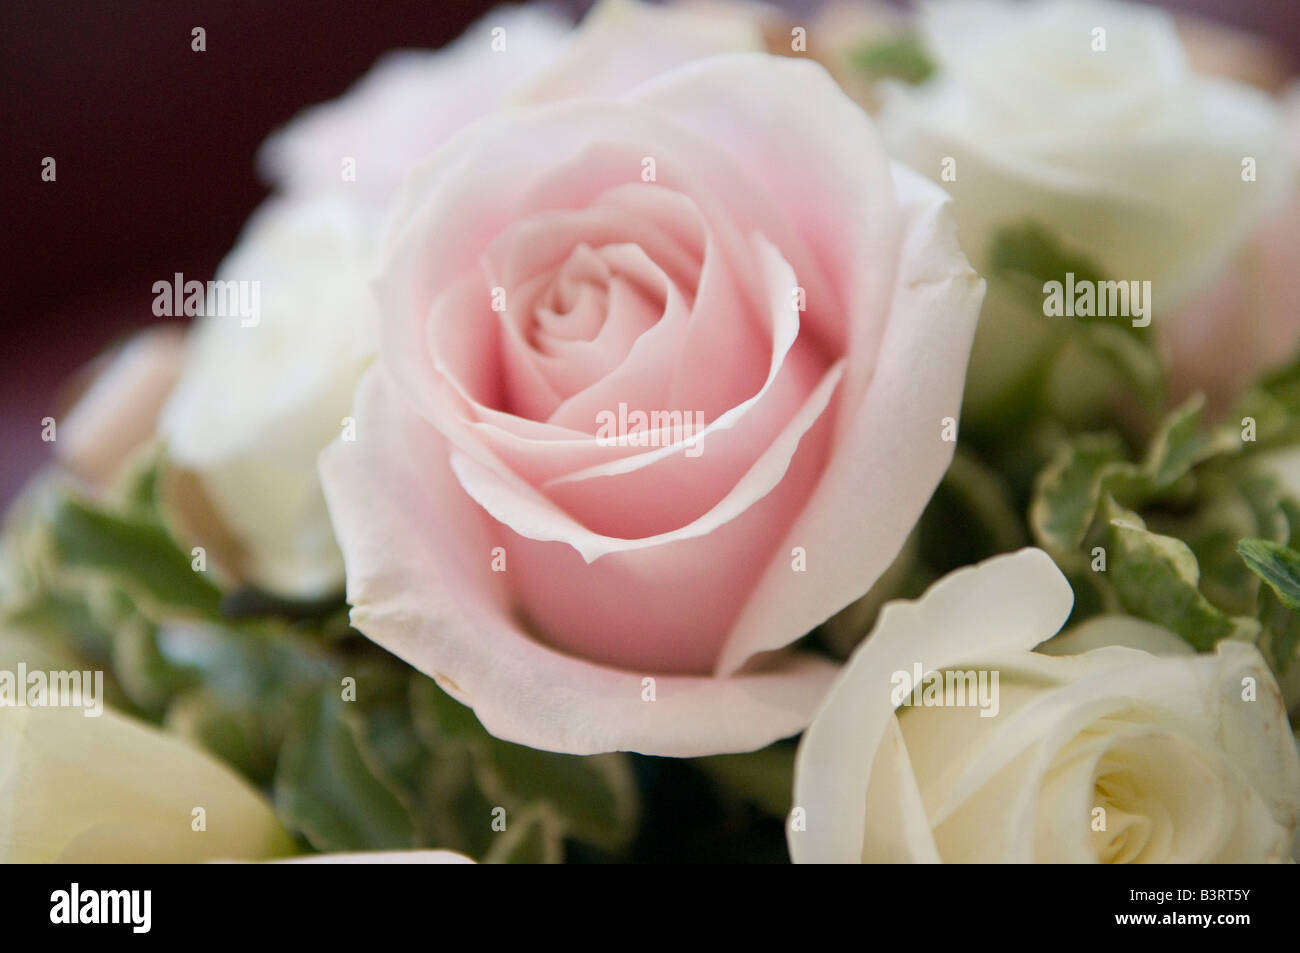 rose roses flower flowers florist floristry bouquet flower bouquets wedding weddings romance romantic show of affection - Stock Image